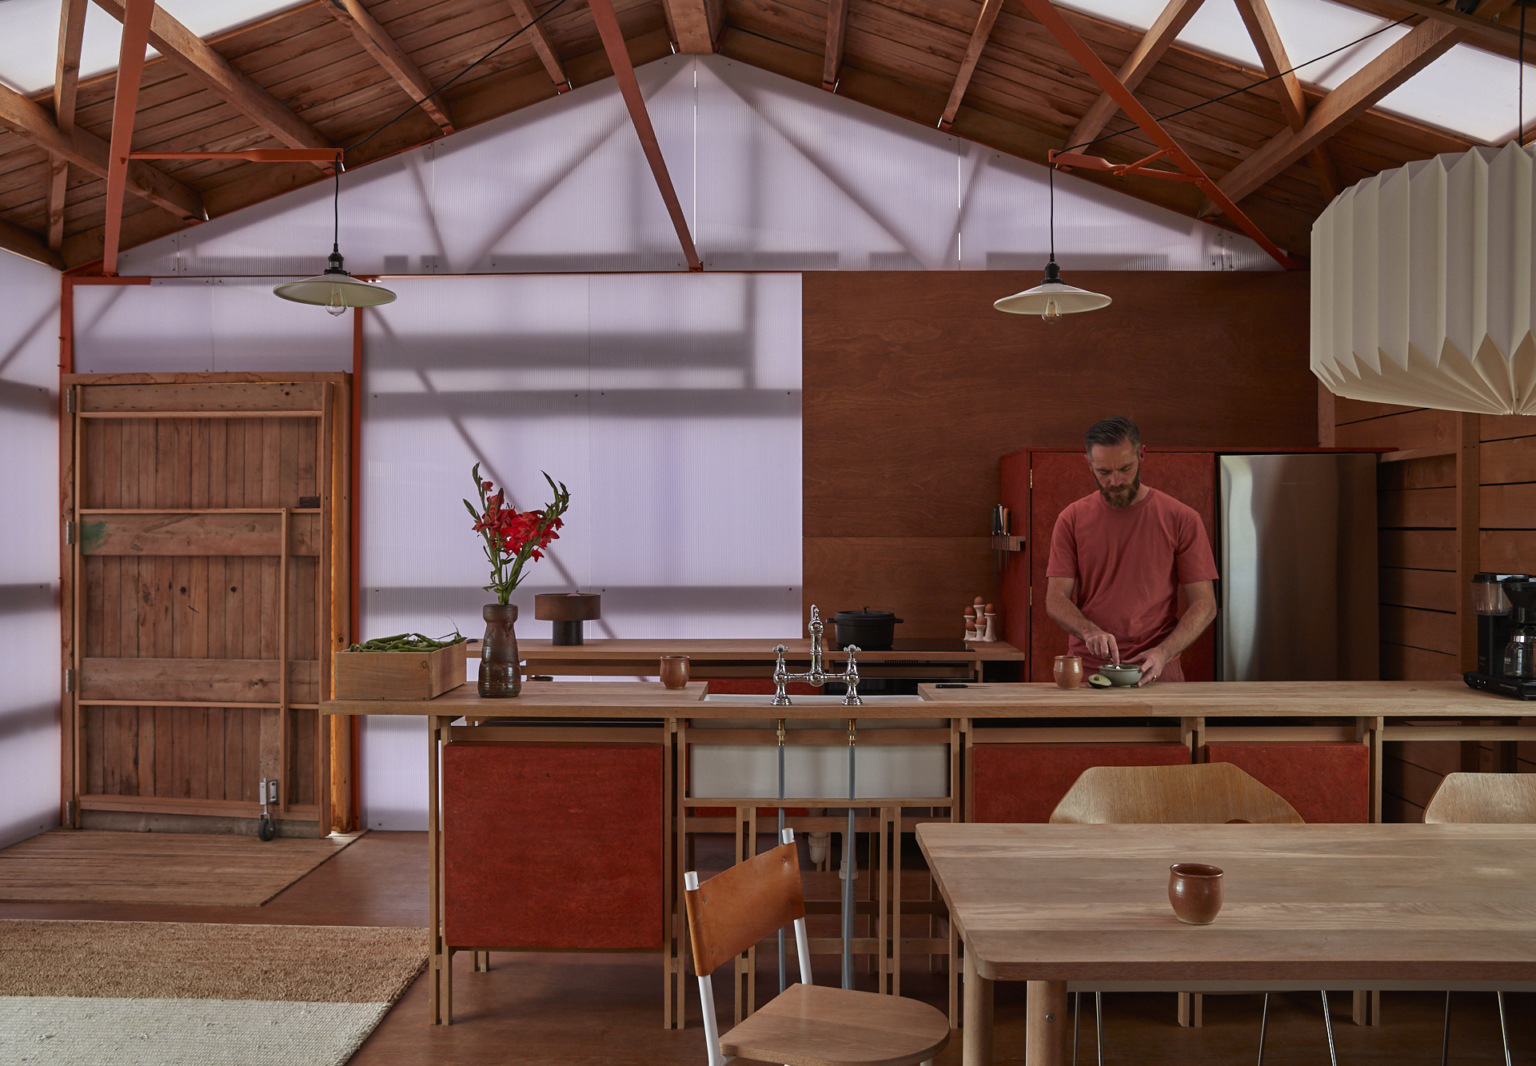 Rehab Diary: Architect Ben Daly and Family at Home in a Converted Sheep Shed